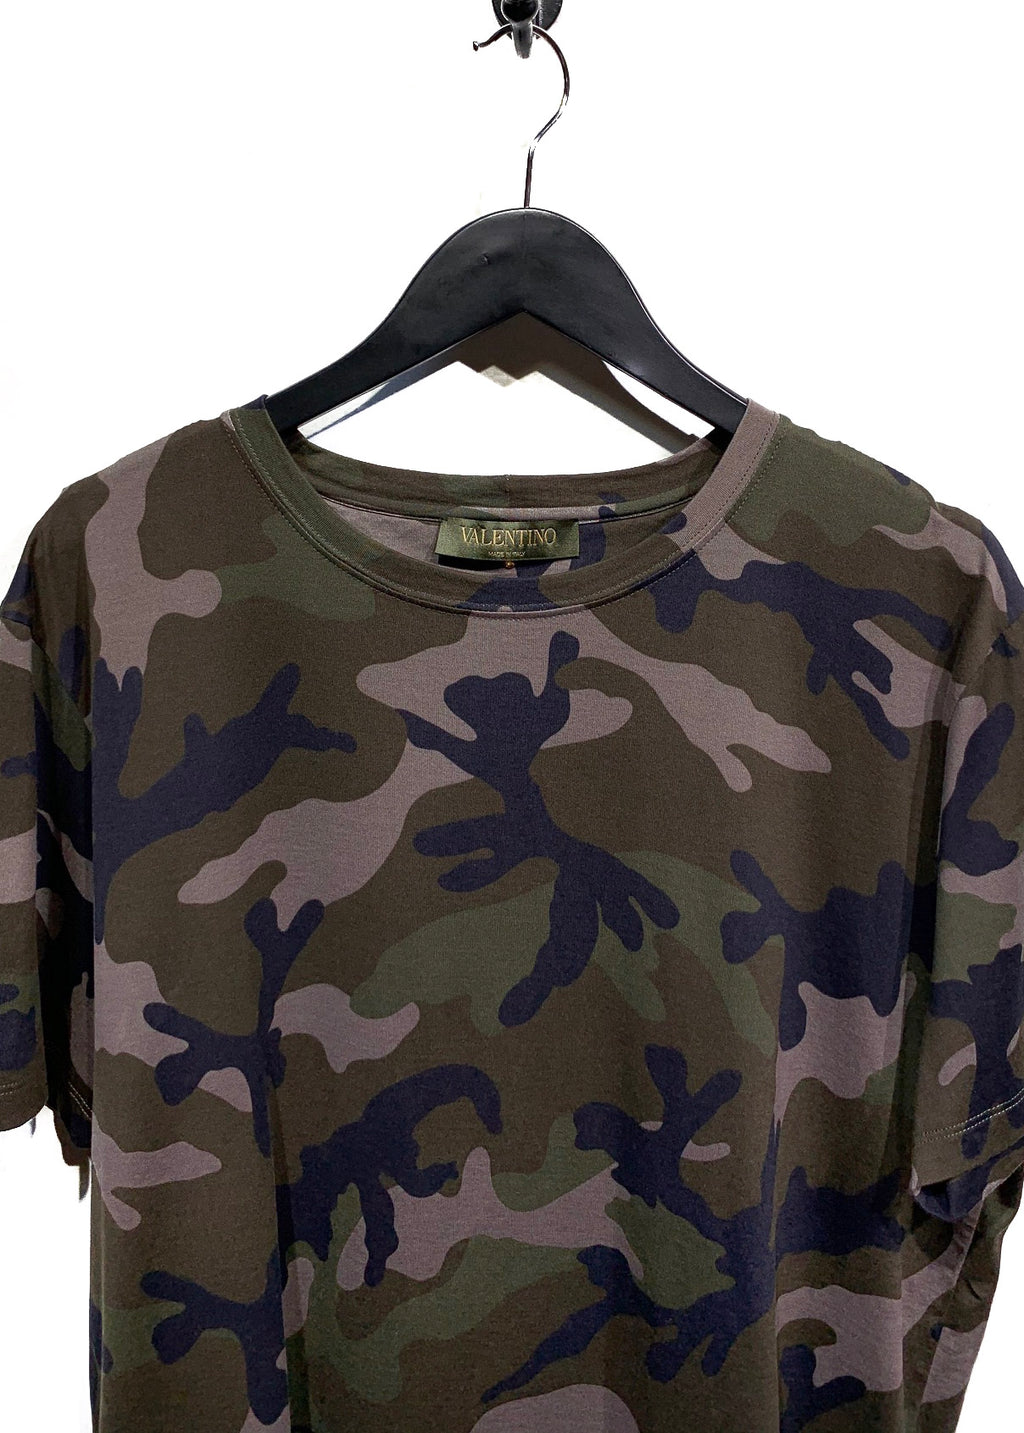 Valentino Green Camouflage T-shirt